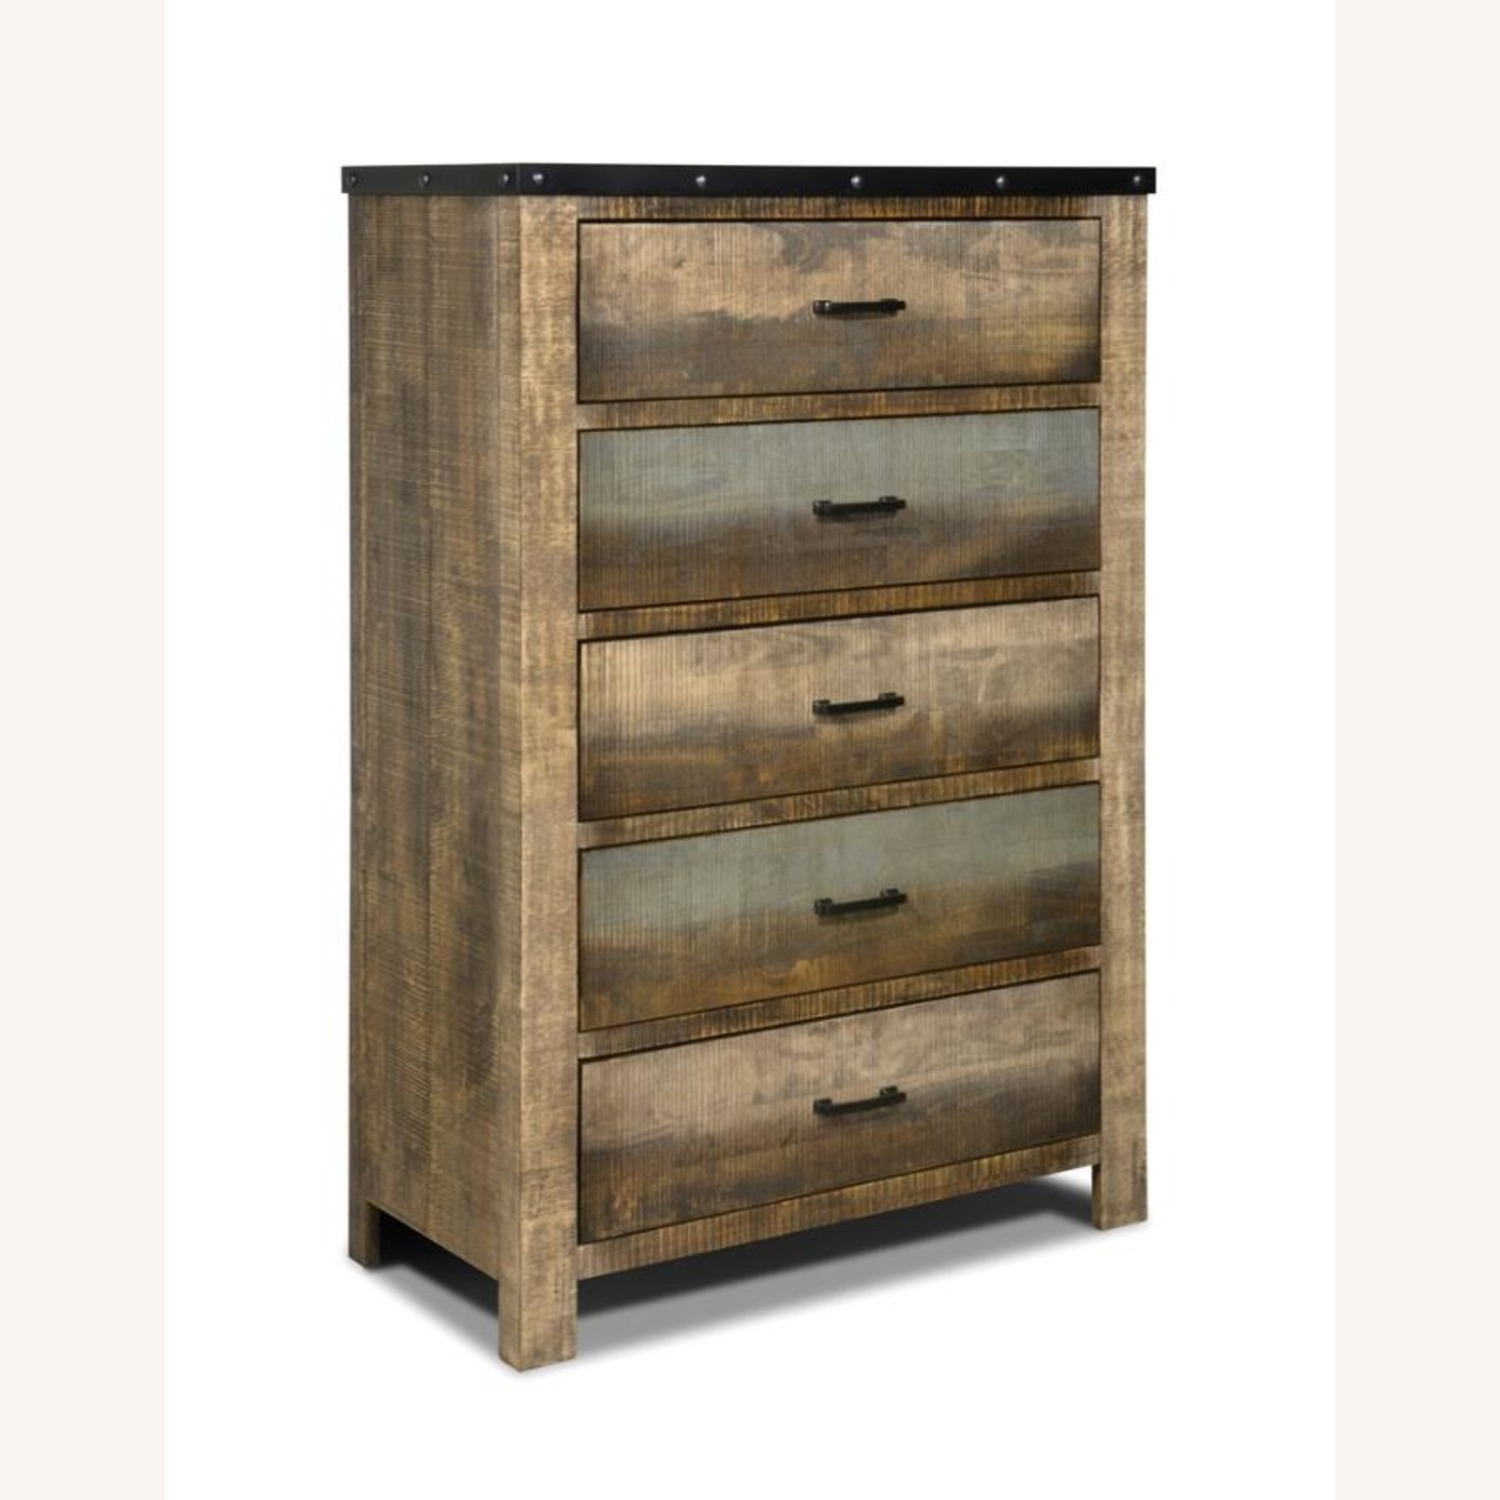 Chest In Antique Multi-Color Wood Finish - image-0